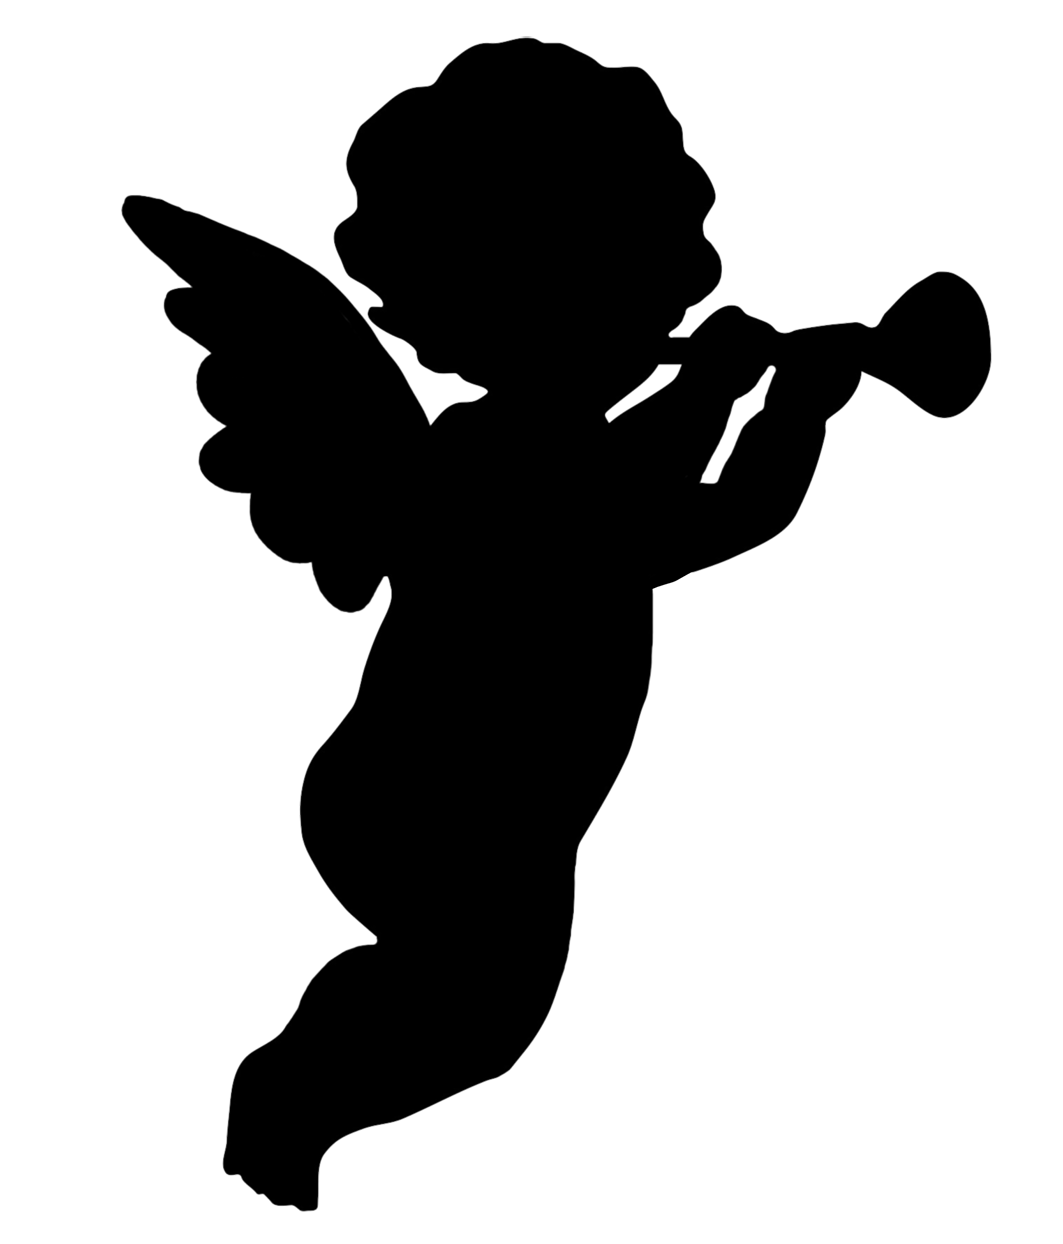 Angels silhouette png. Angel silhouettes trumpet blowing